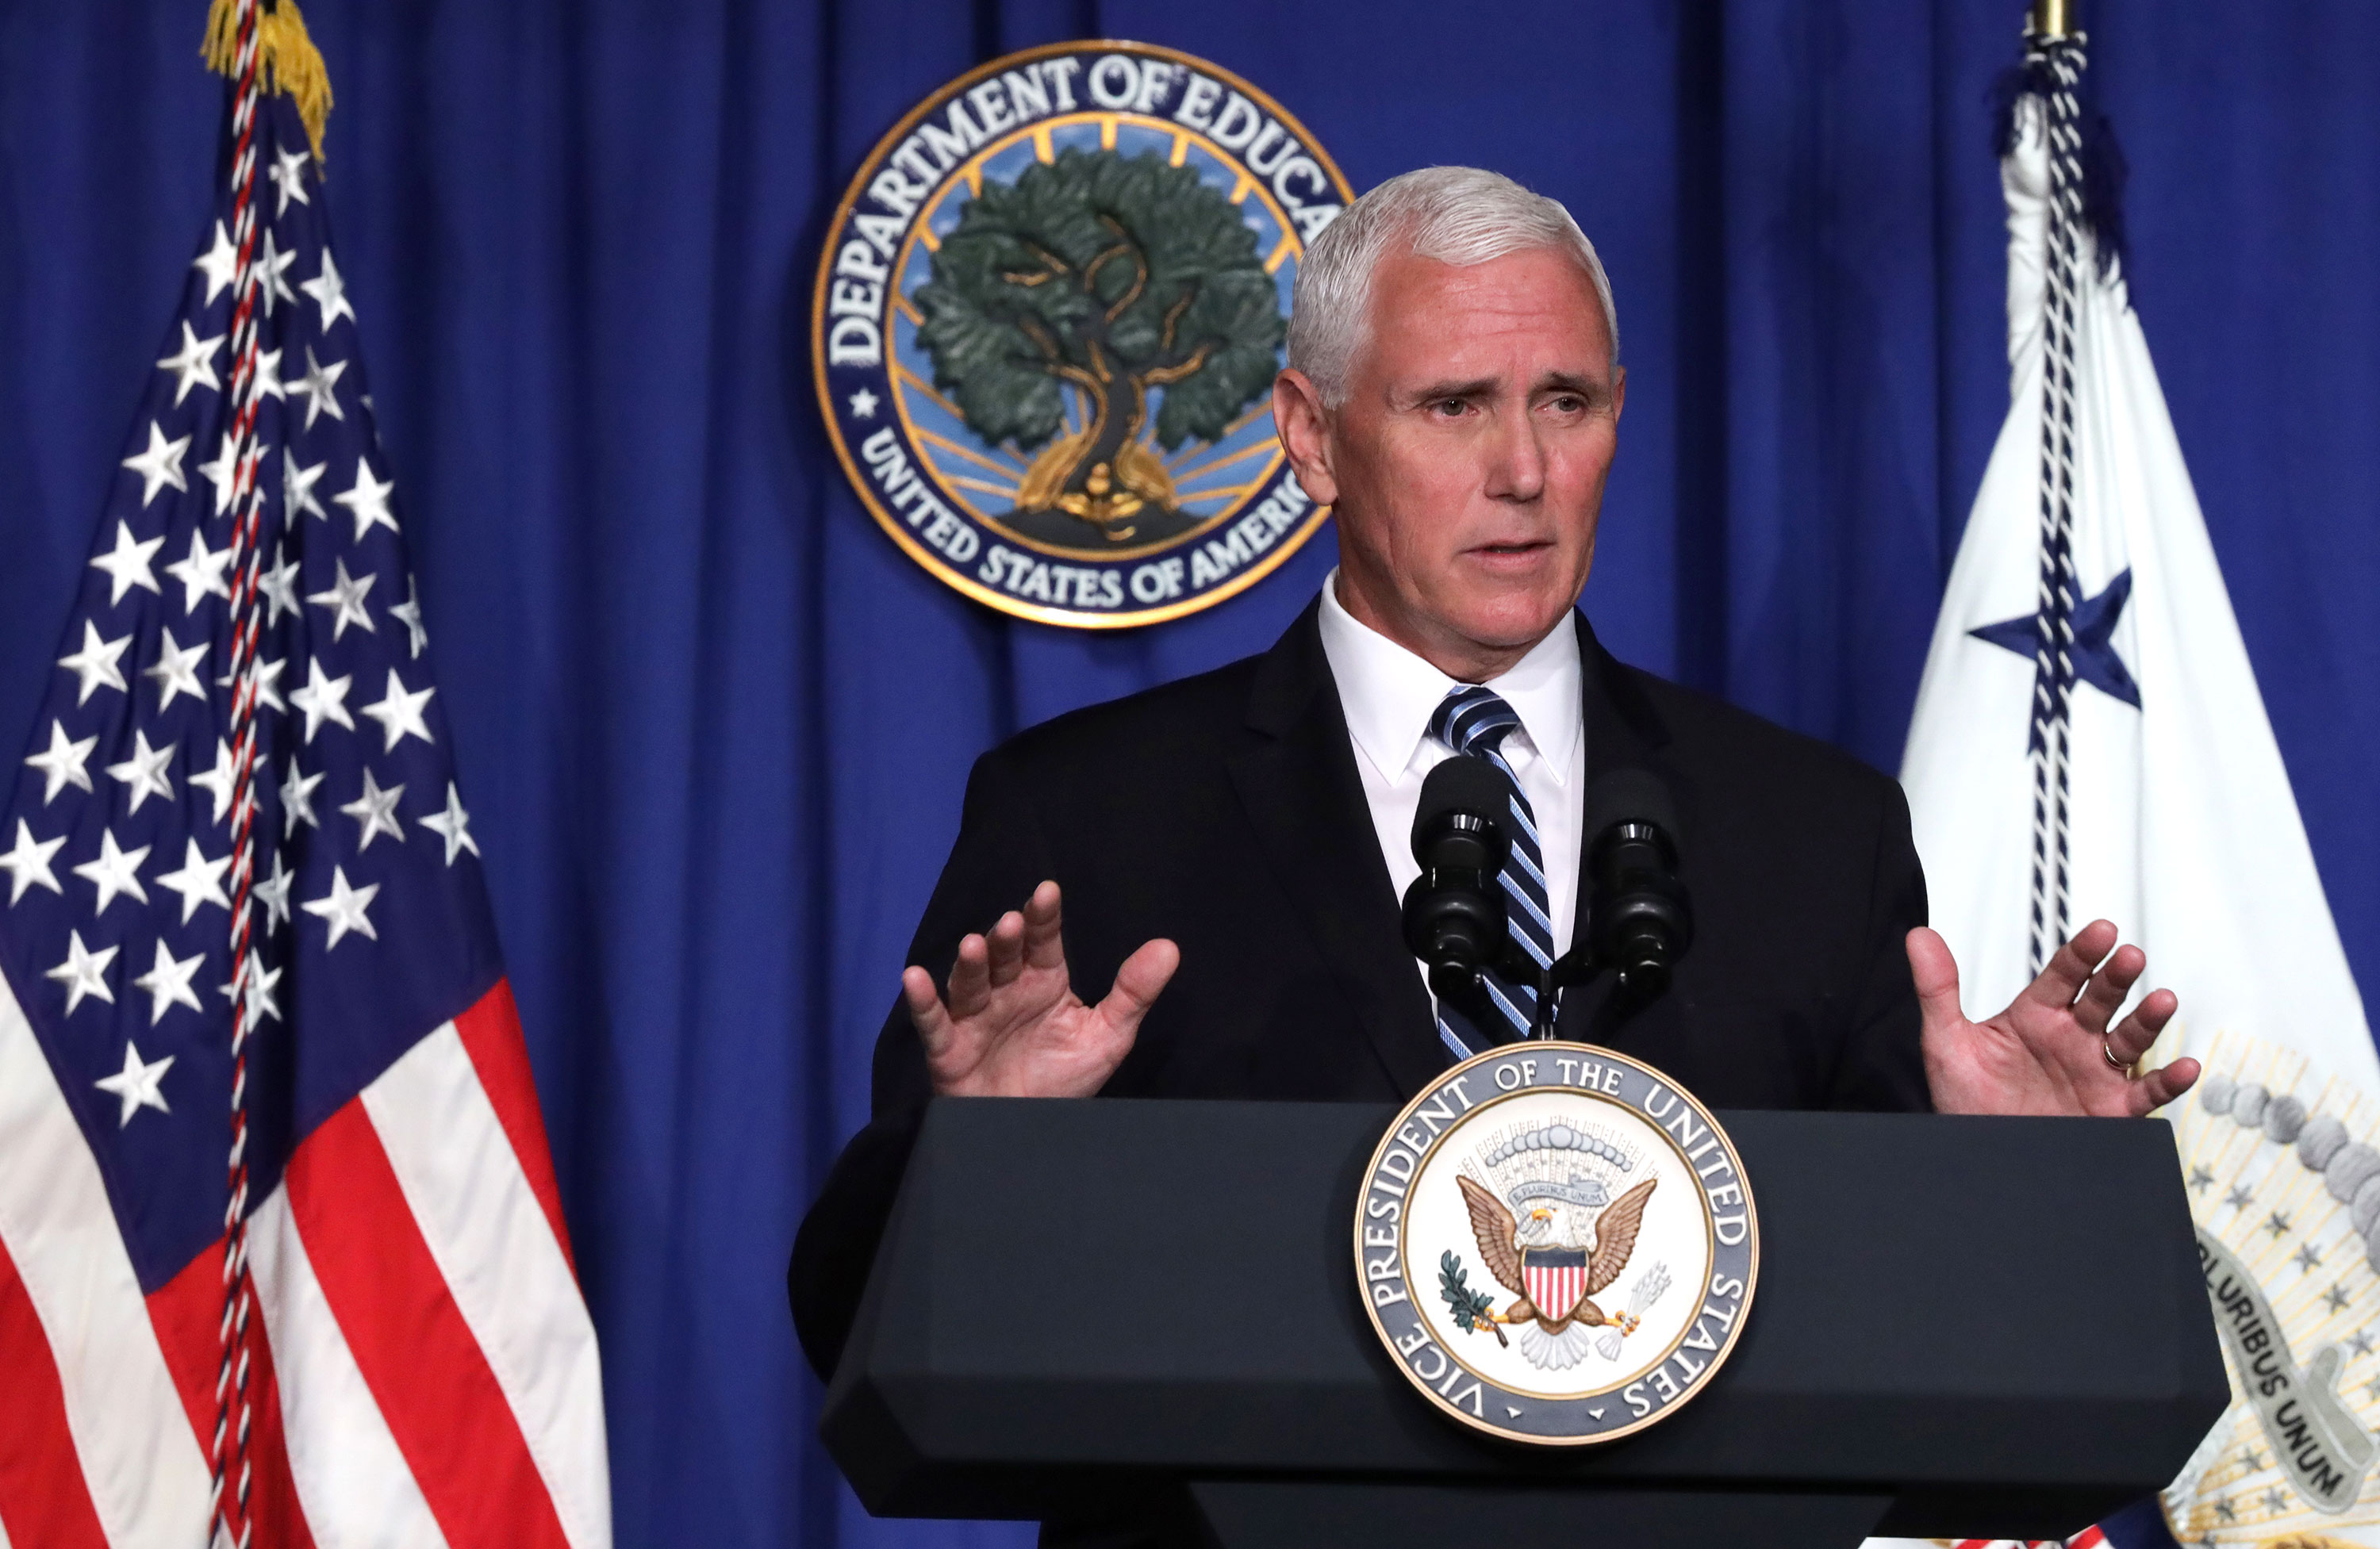 Vice President Mike Pence speaks during a press briefing at the U.S. Department of Education July 8 in Washington, DC.